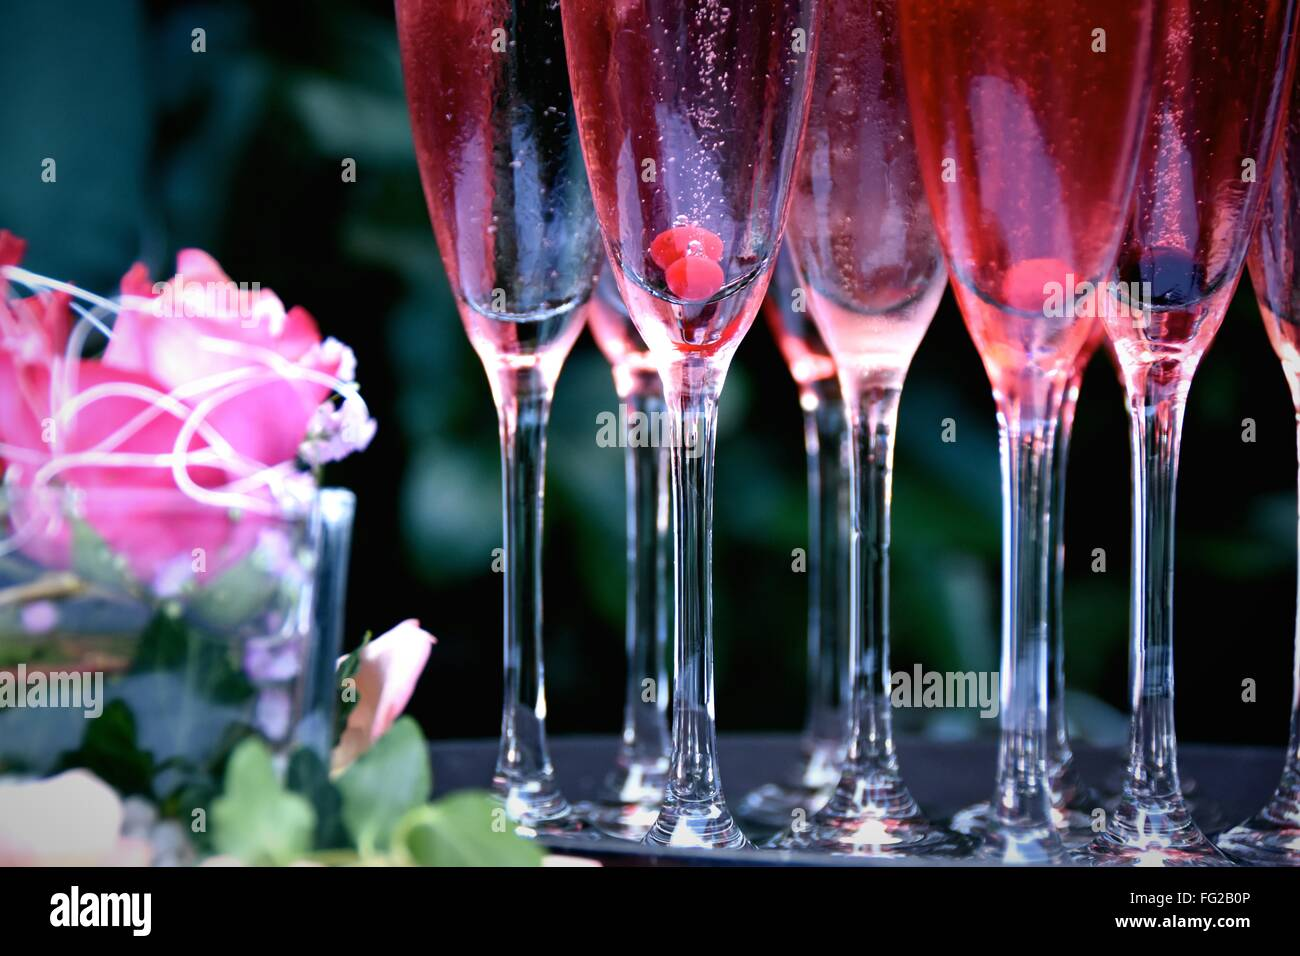 Cocktails In Flutes On Table - Stock Image